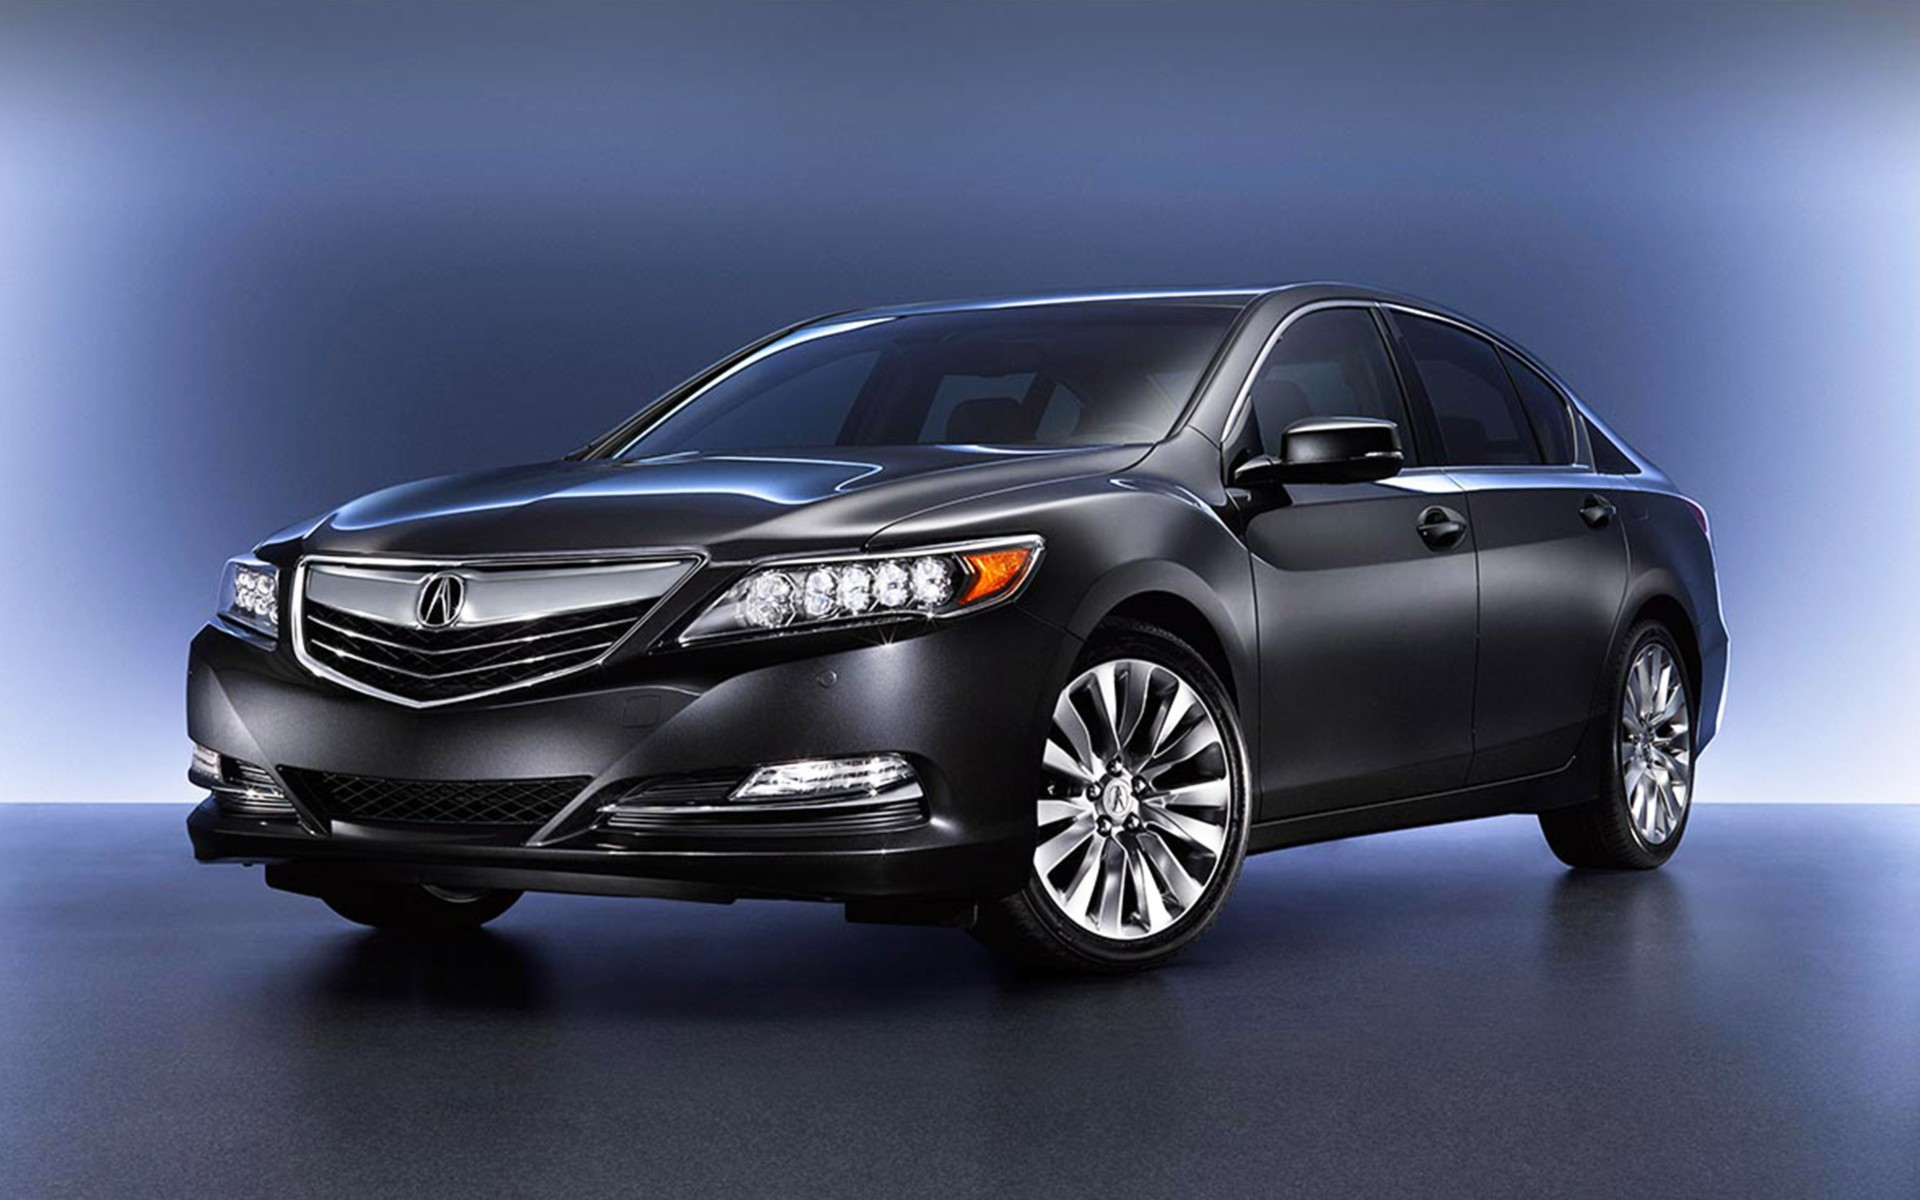 2015 Acura RLX HD Car Wallpapers